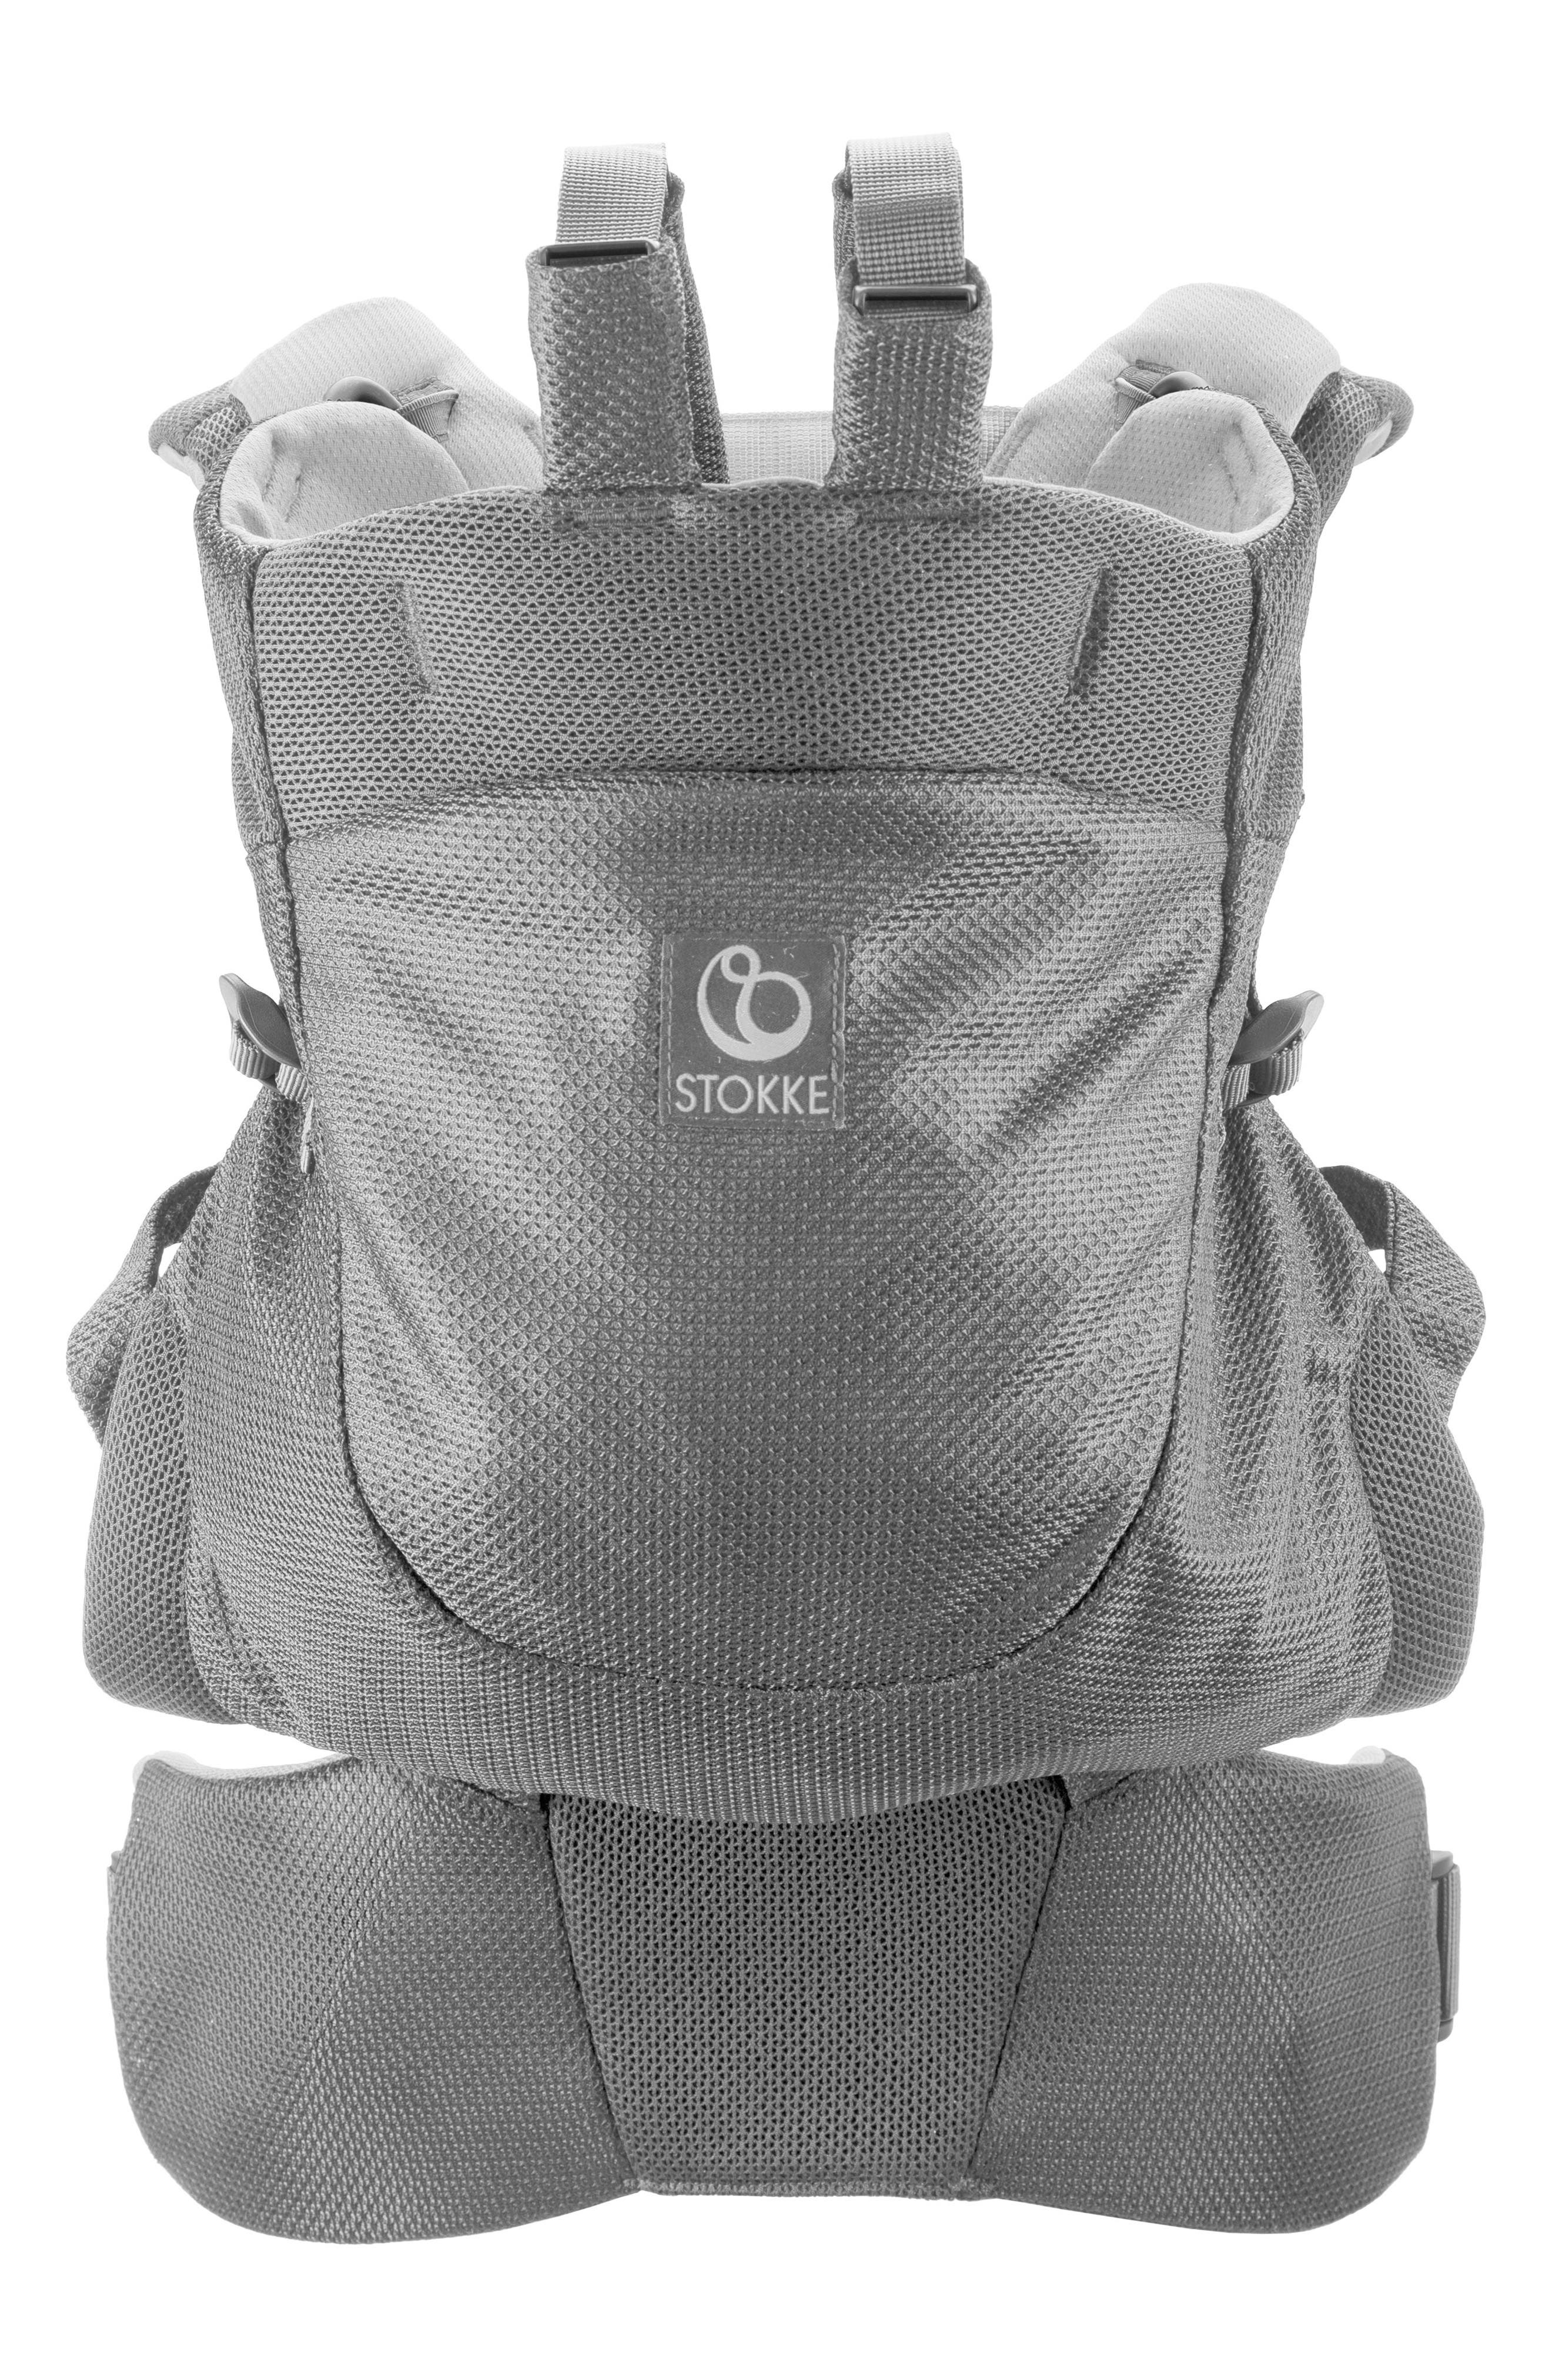 Infant Stokke Mycarrier Frontback 3In1 Baby Carrier Size One Size  Grey